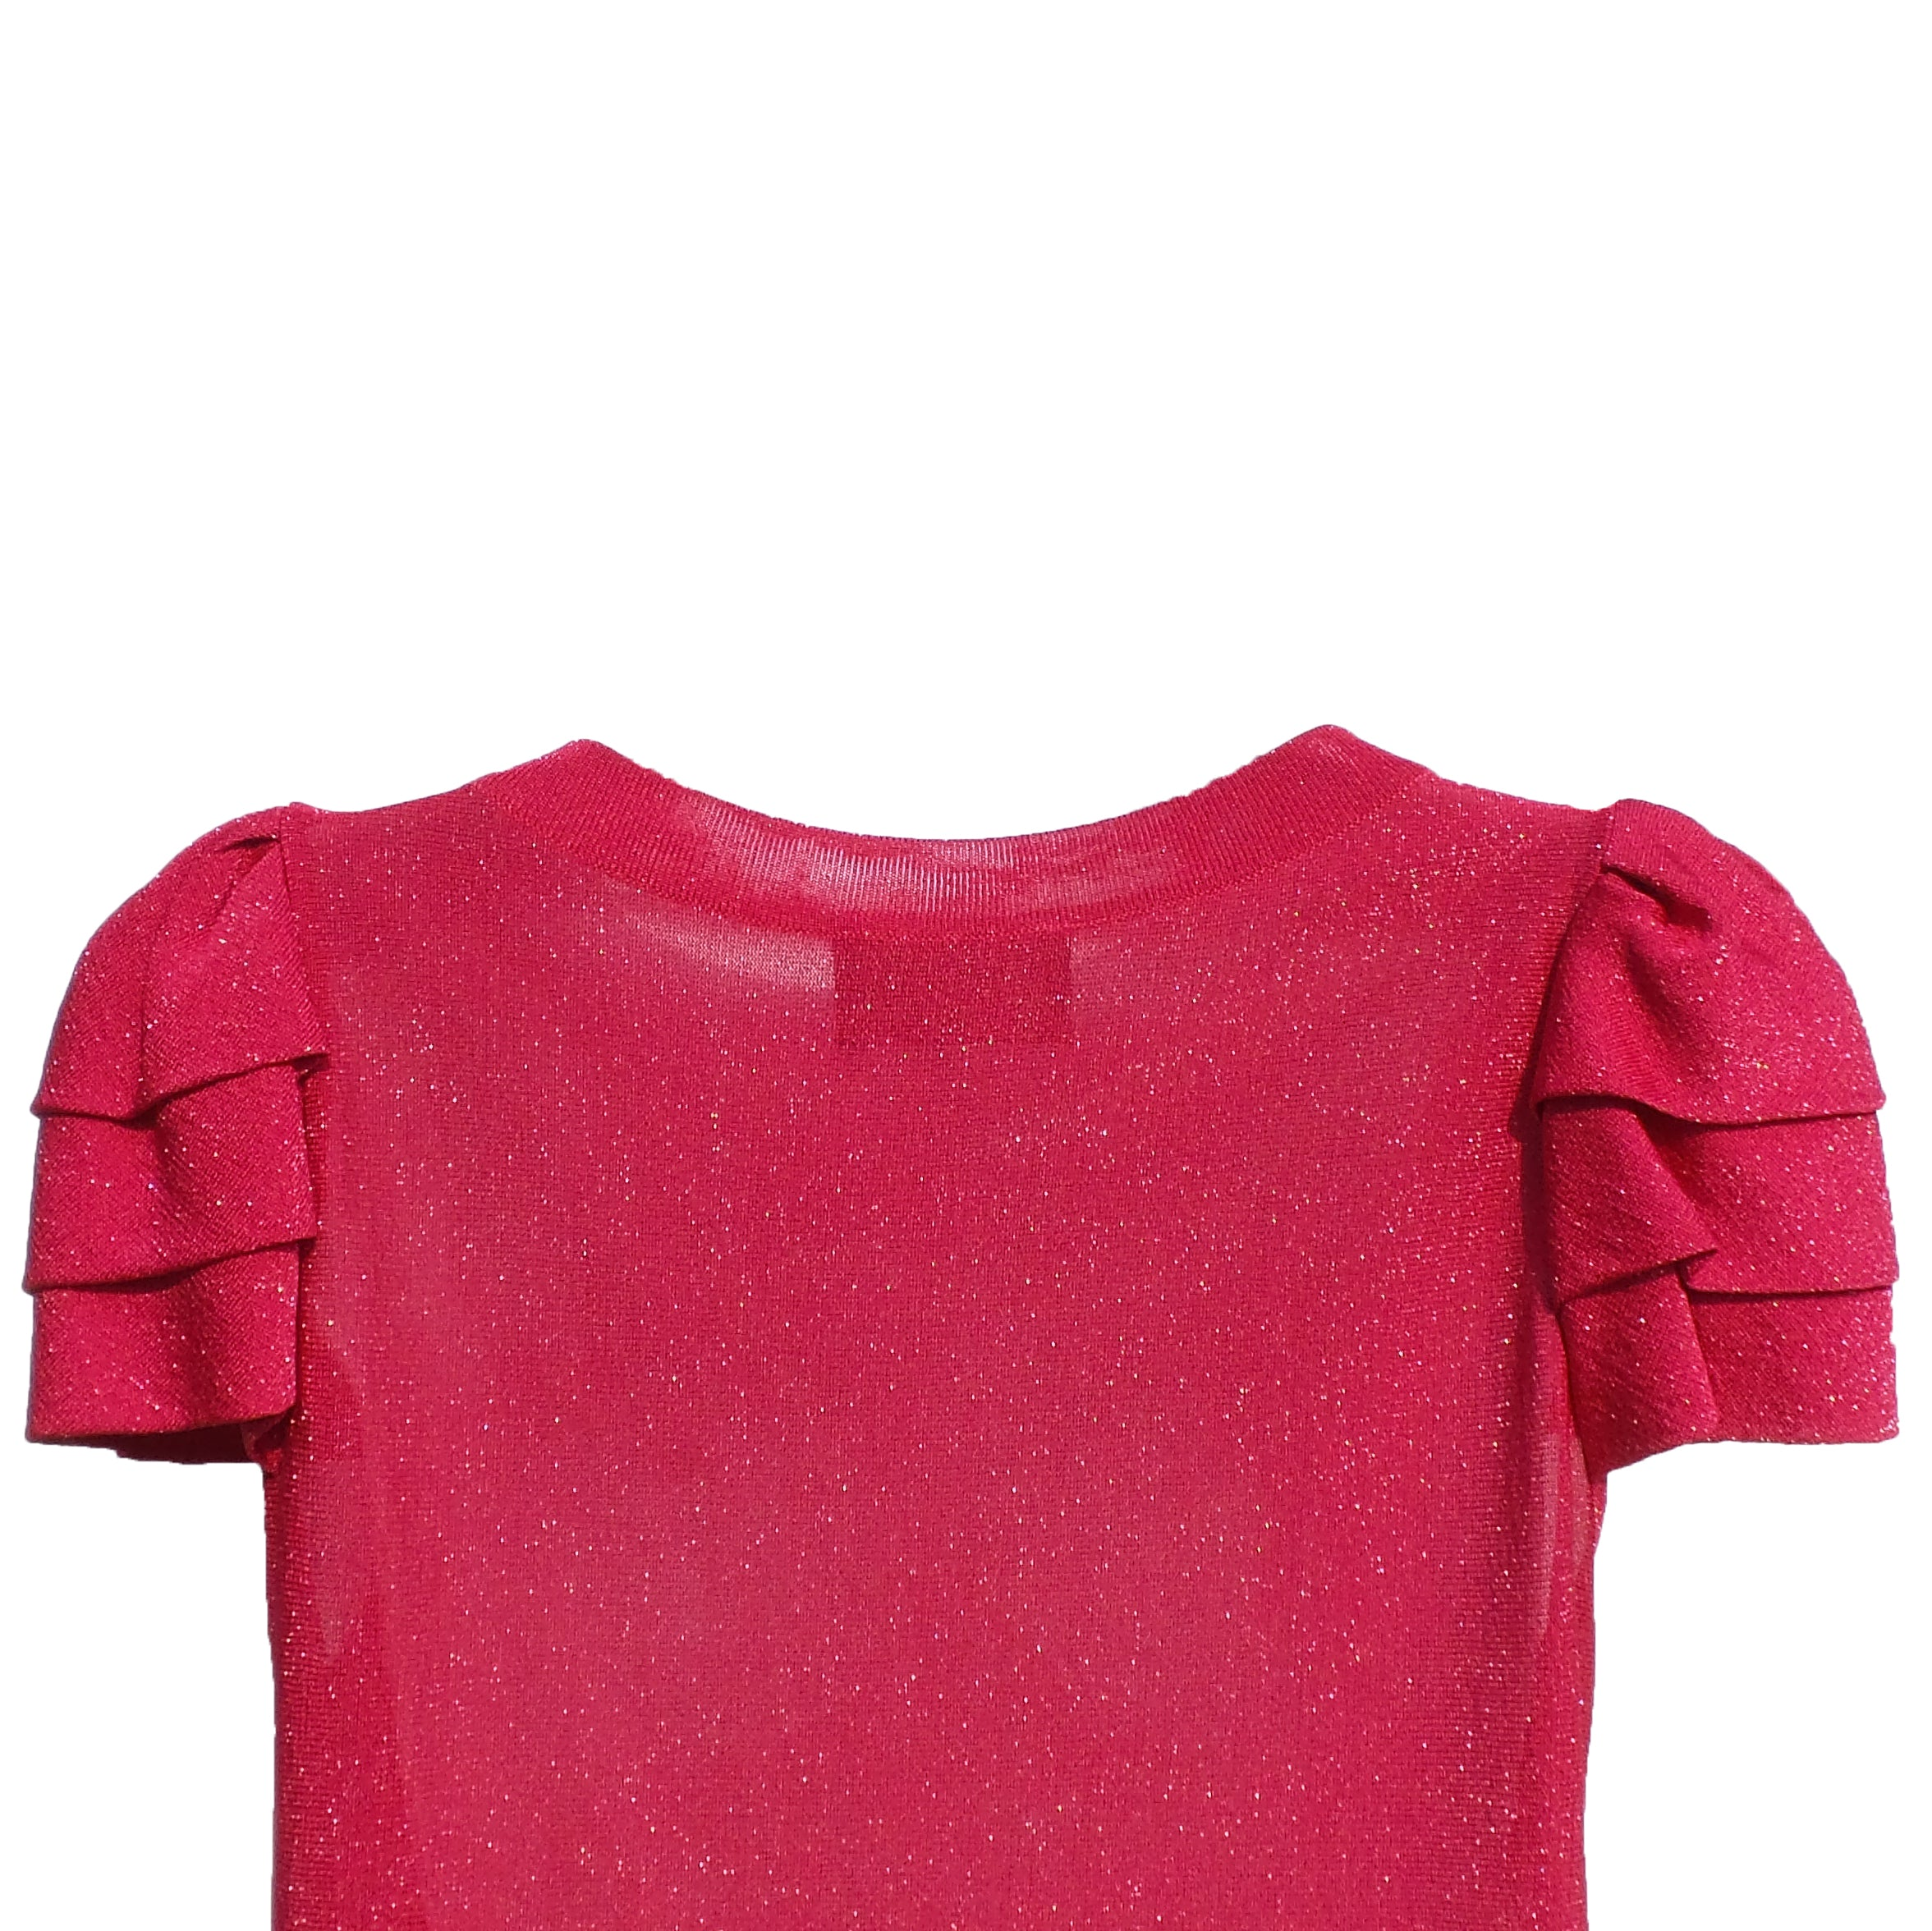 CHANEL 09P Metallic Raspberry Pink Tiered Short Sleeve Pleated Tunic Dress S GUC